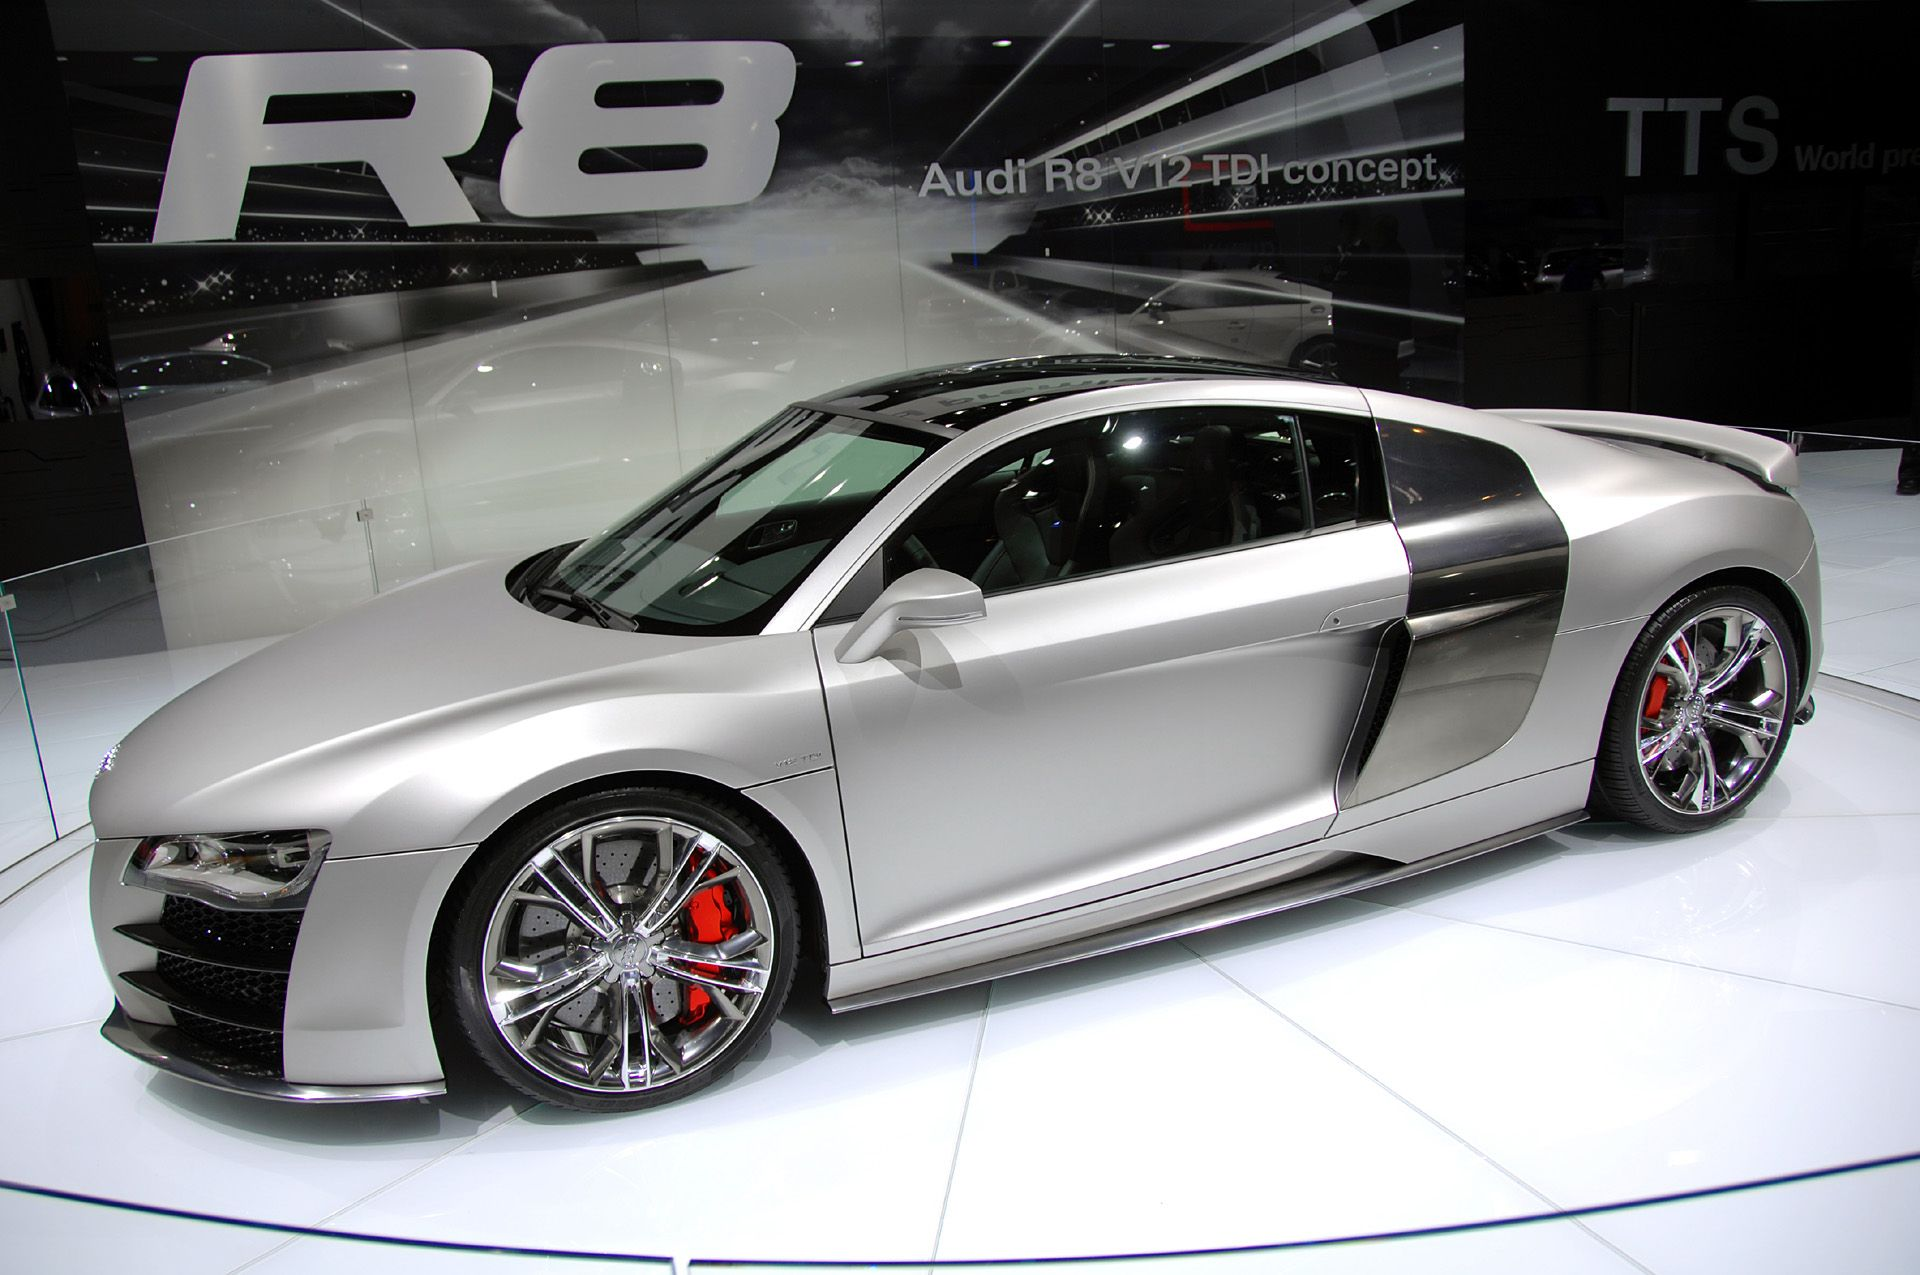 Audi R8 V12 Hd Car Free Wallpaper Http Whatstrendingonline